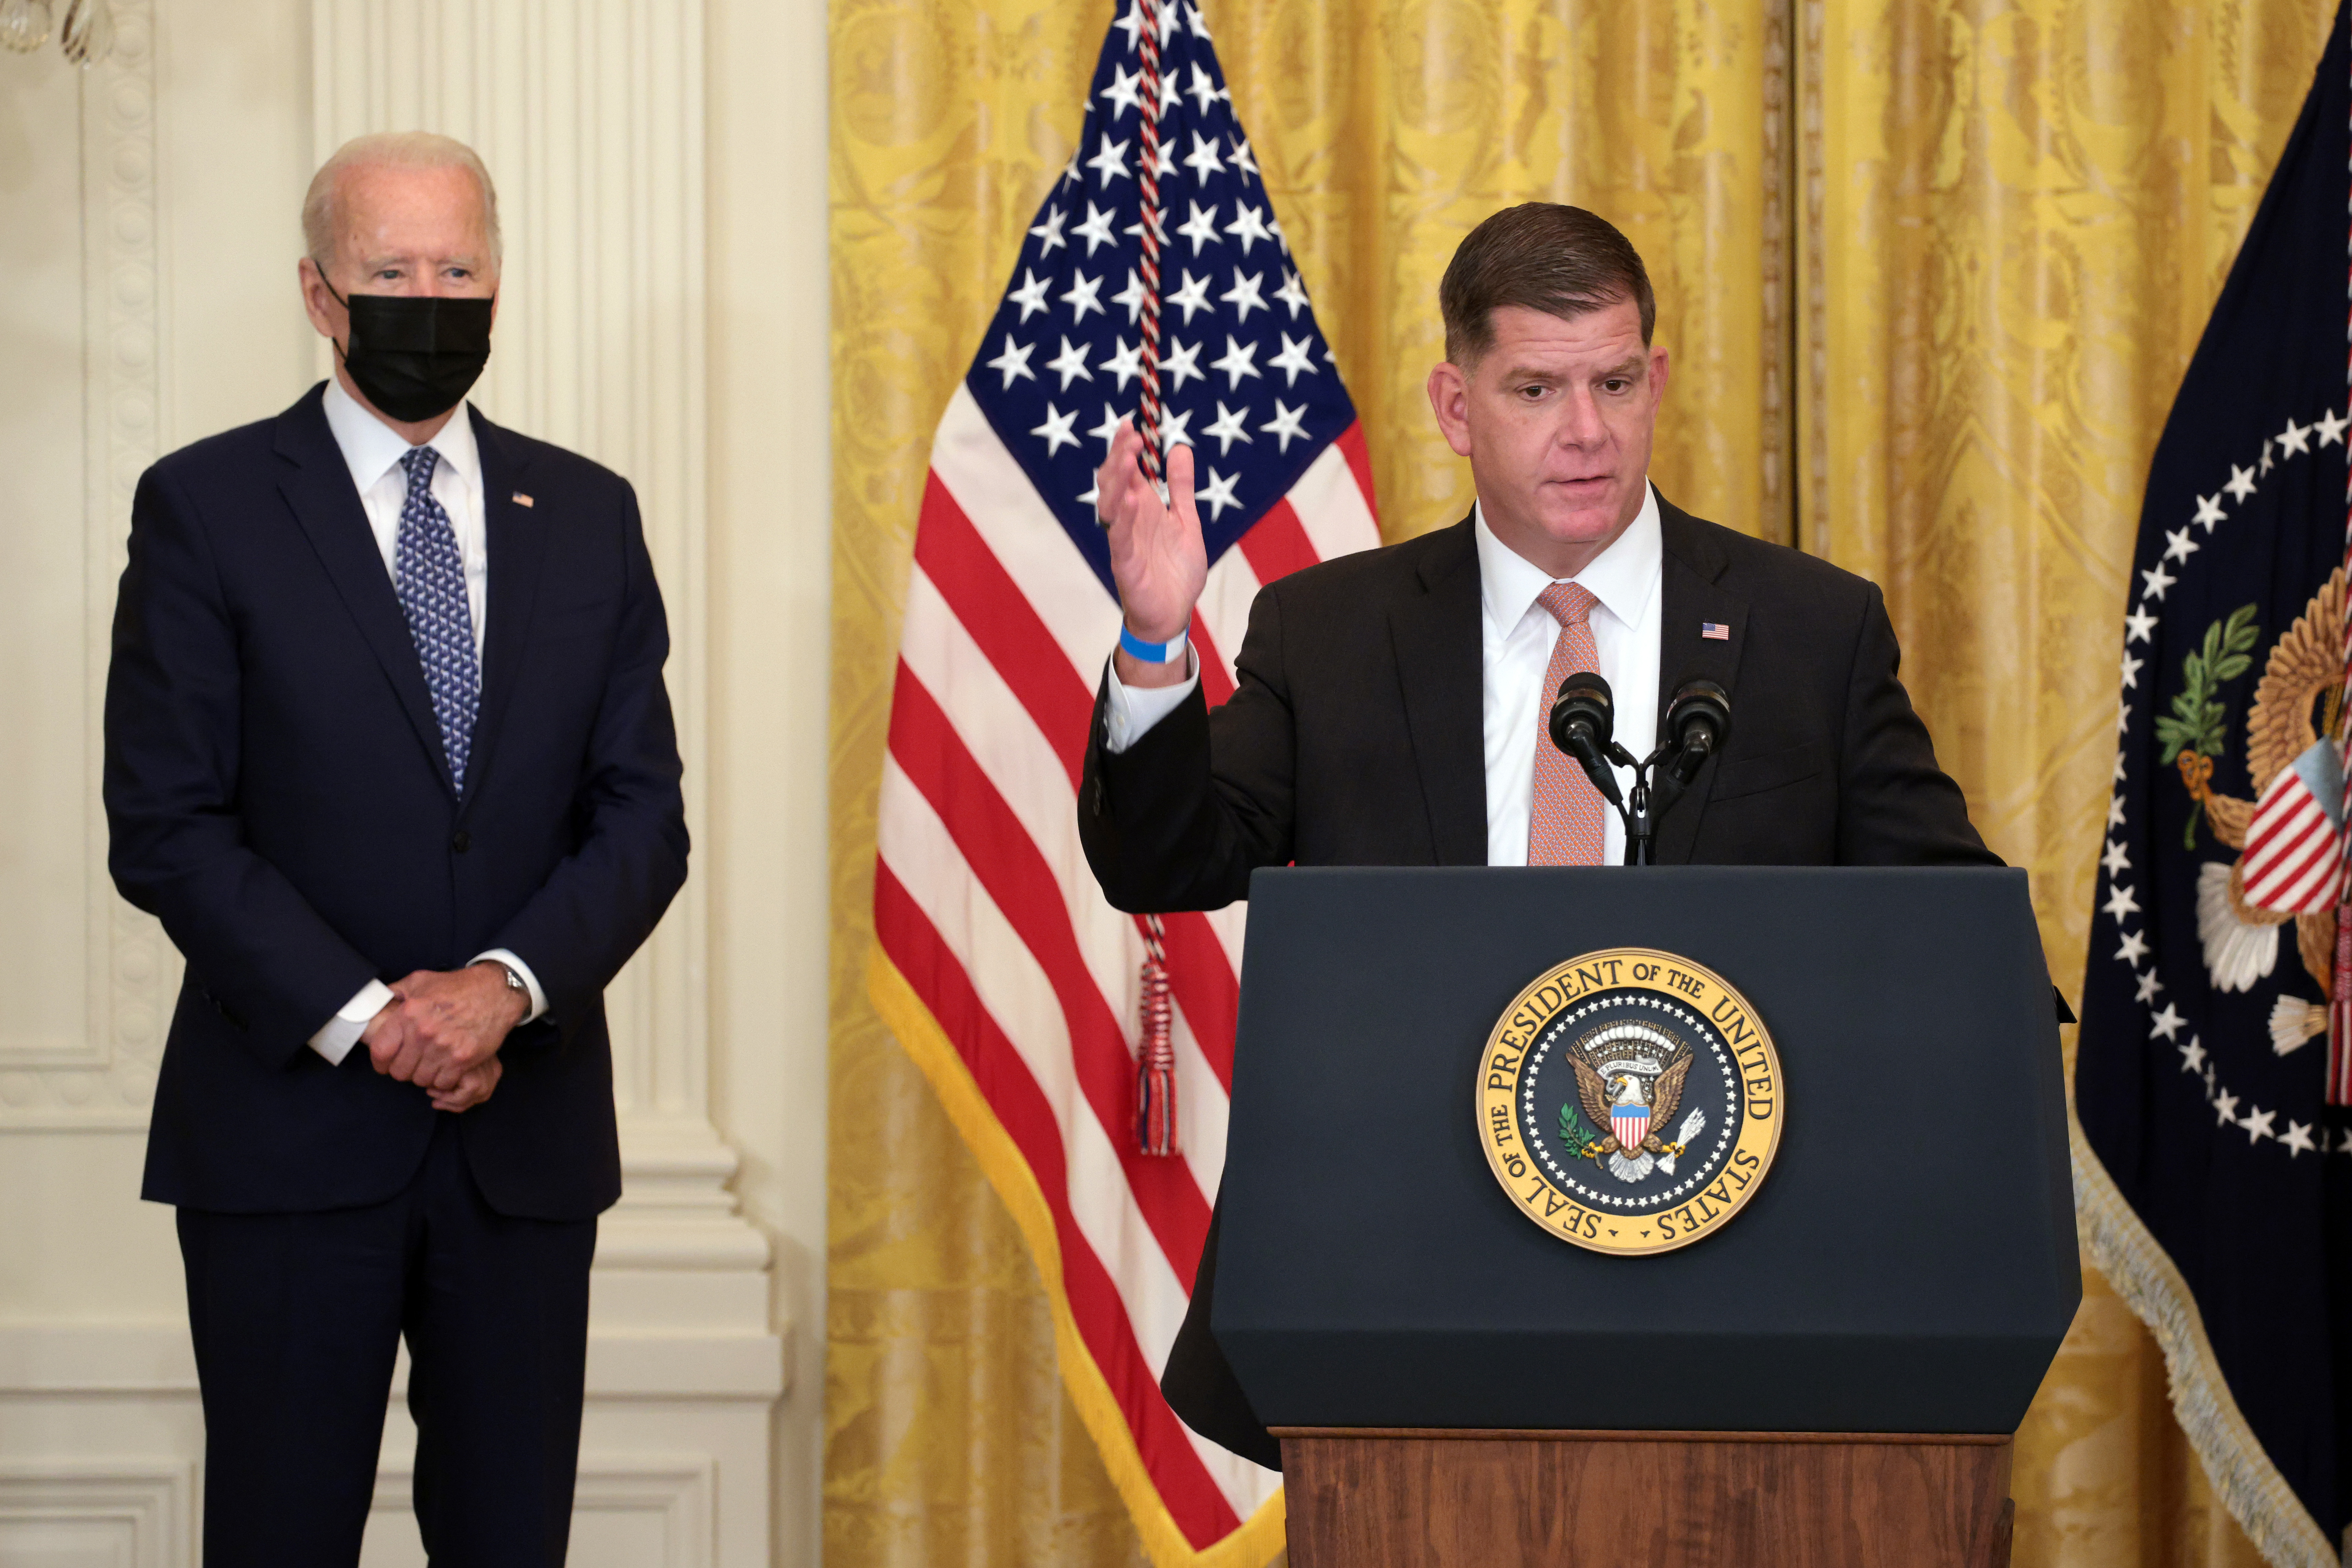 Labor Secretary Marty Walsh speaks alongside Joe Biden during an event on workers rights and labor unions in the East Room at the White House in Washington, DC. (Photo by Kevin Dietsch/Getty Images)